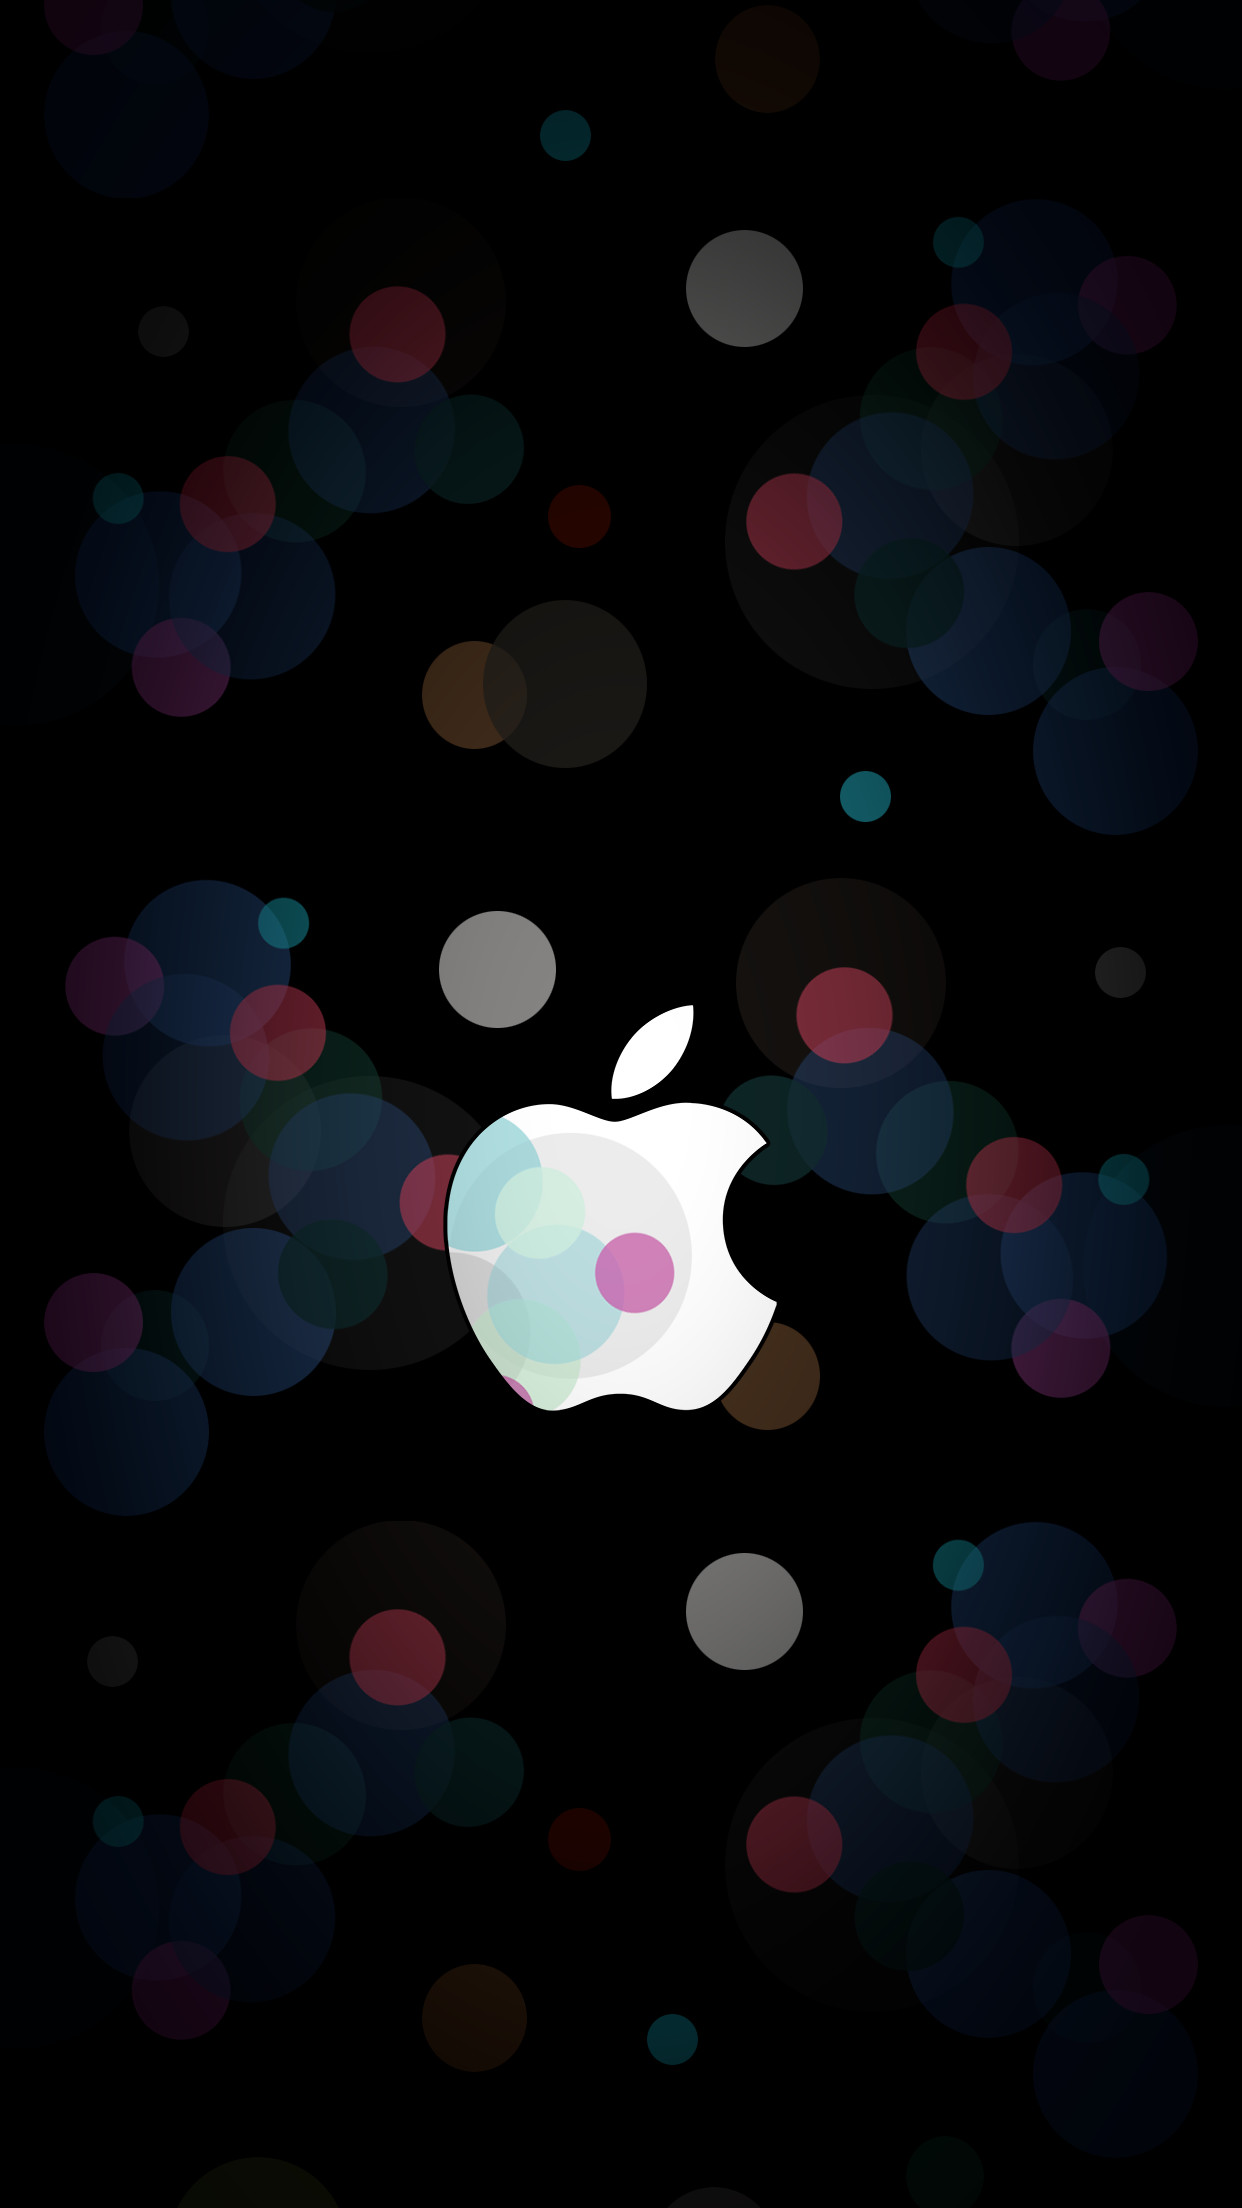 Download: iPhone with logo; …